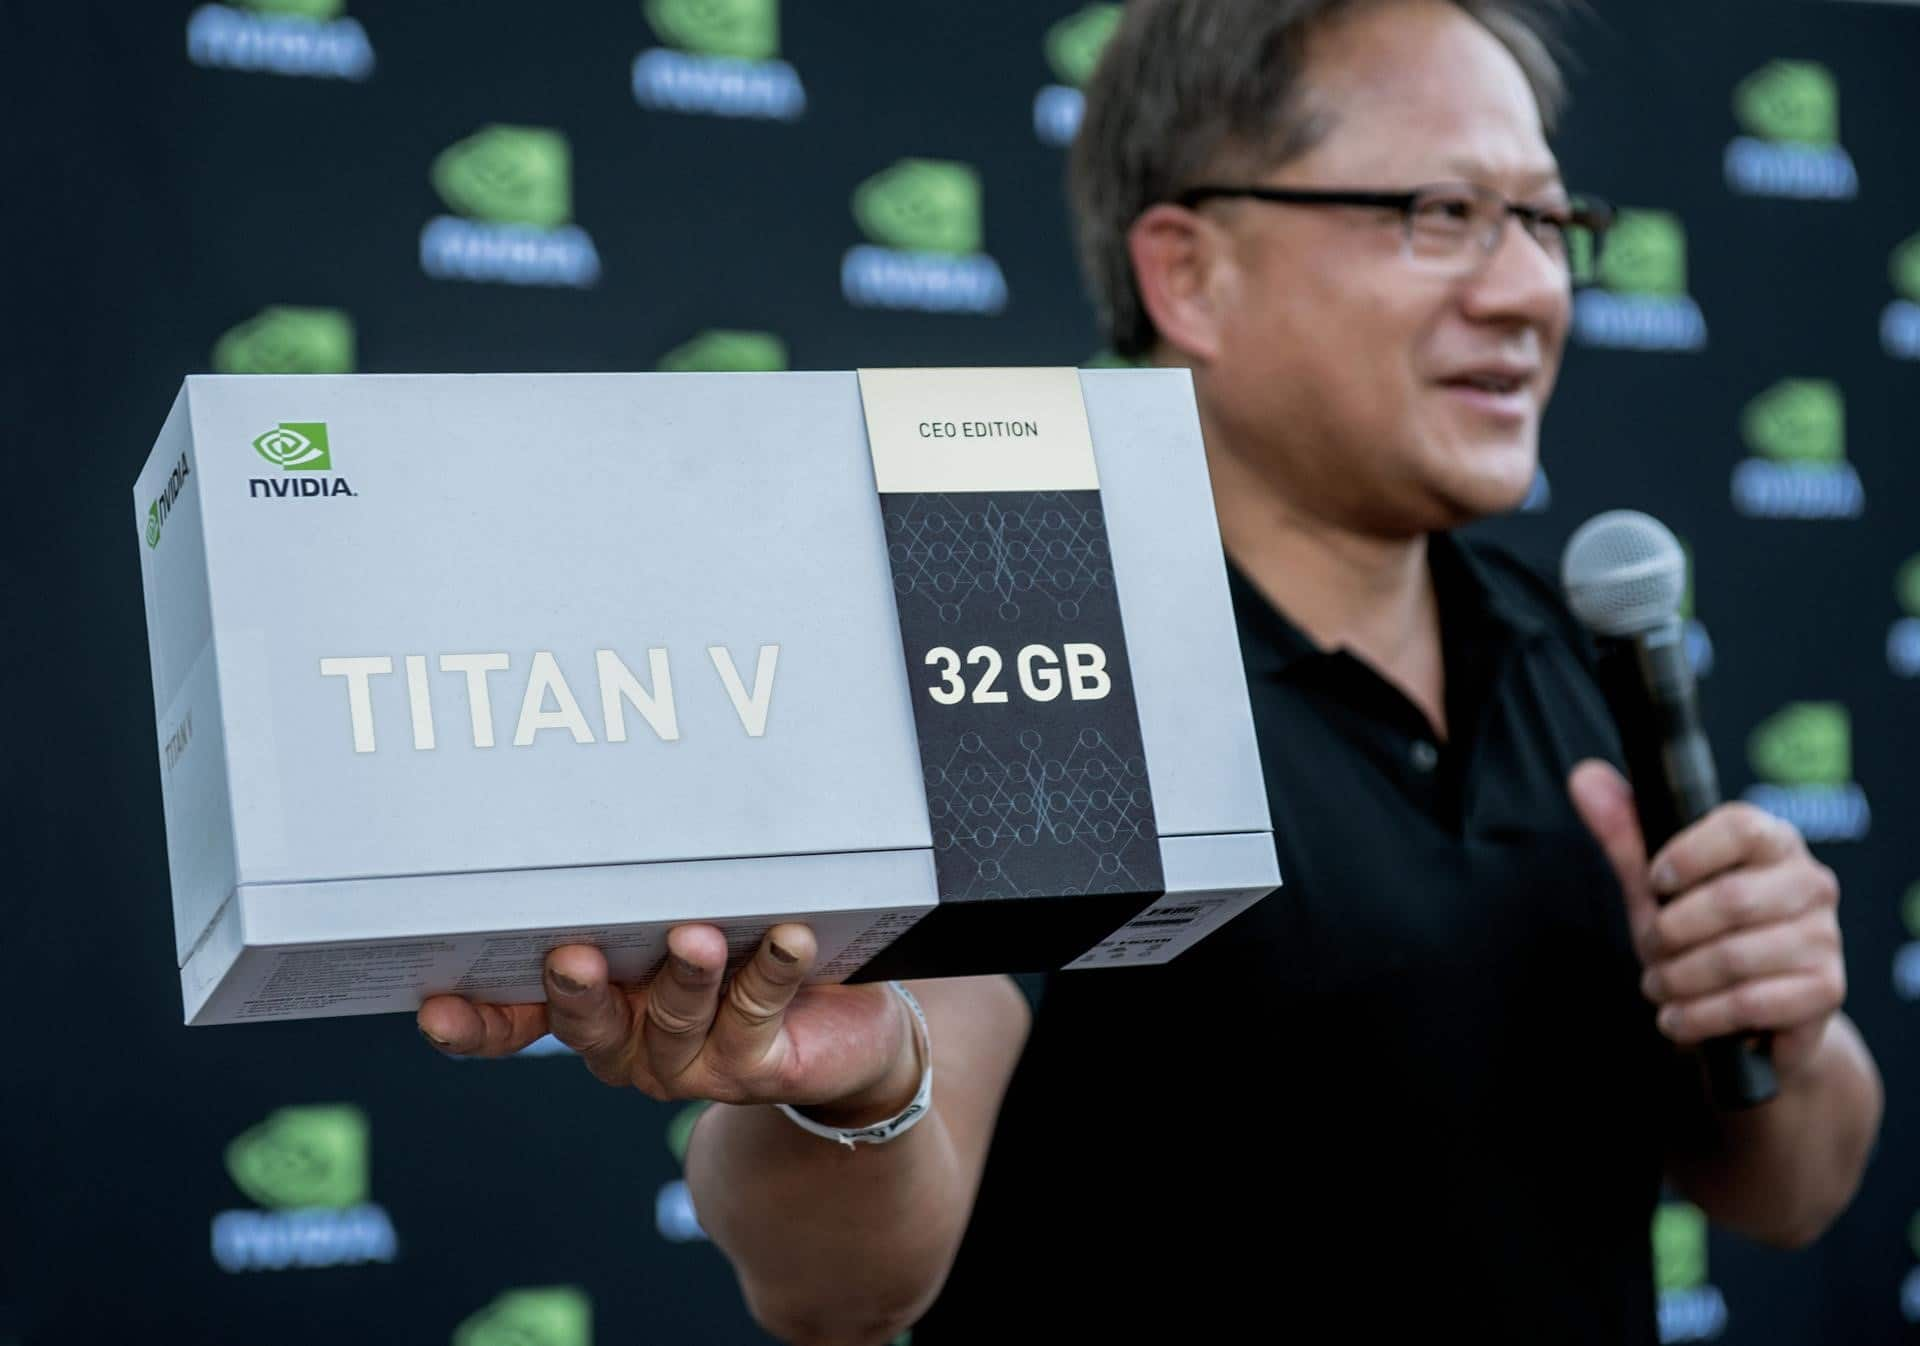 At CVPR, NVIDIA CEO Springs Special Titan V GPUs on AI Researchers